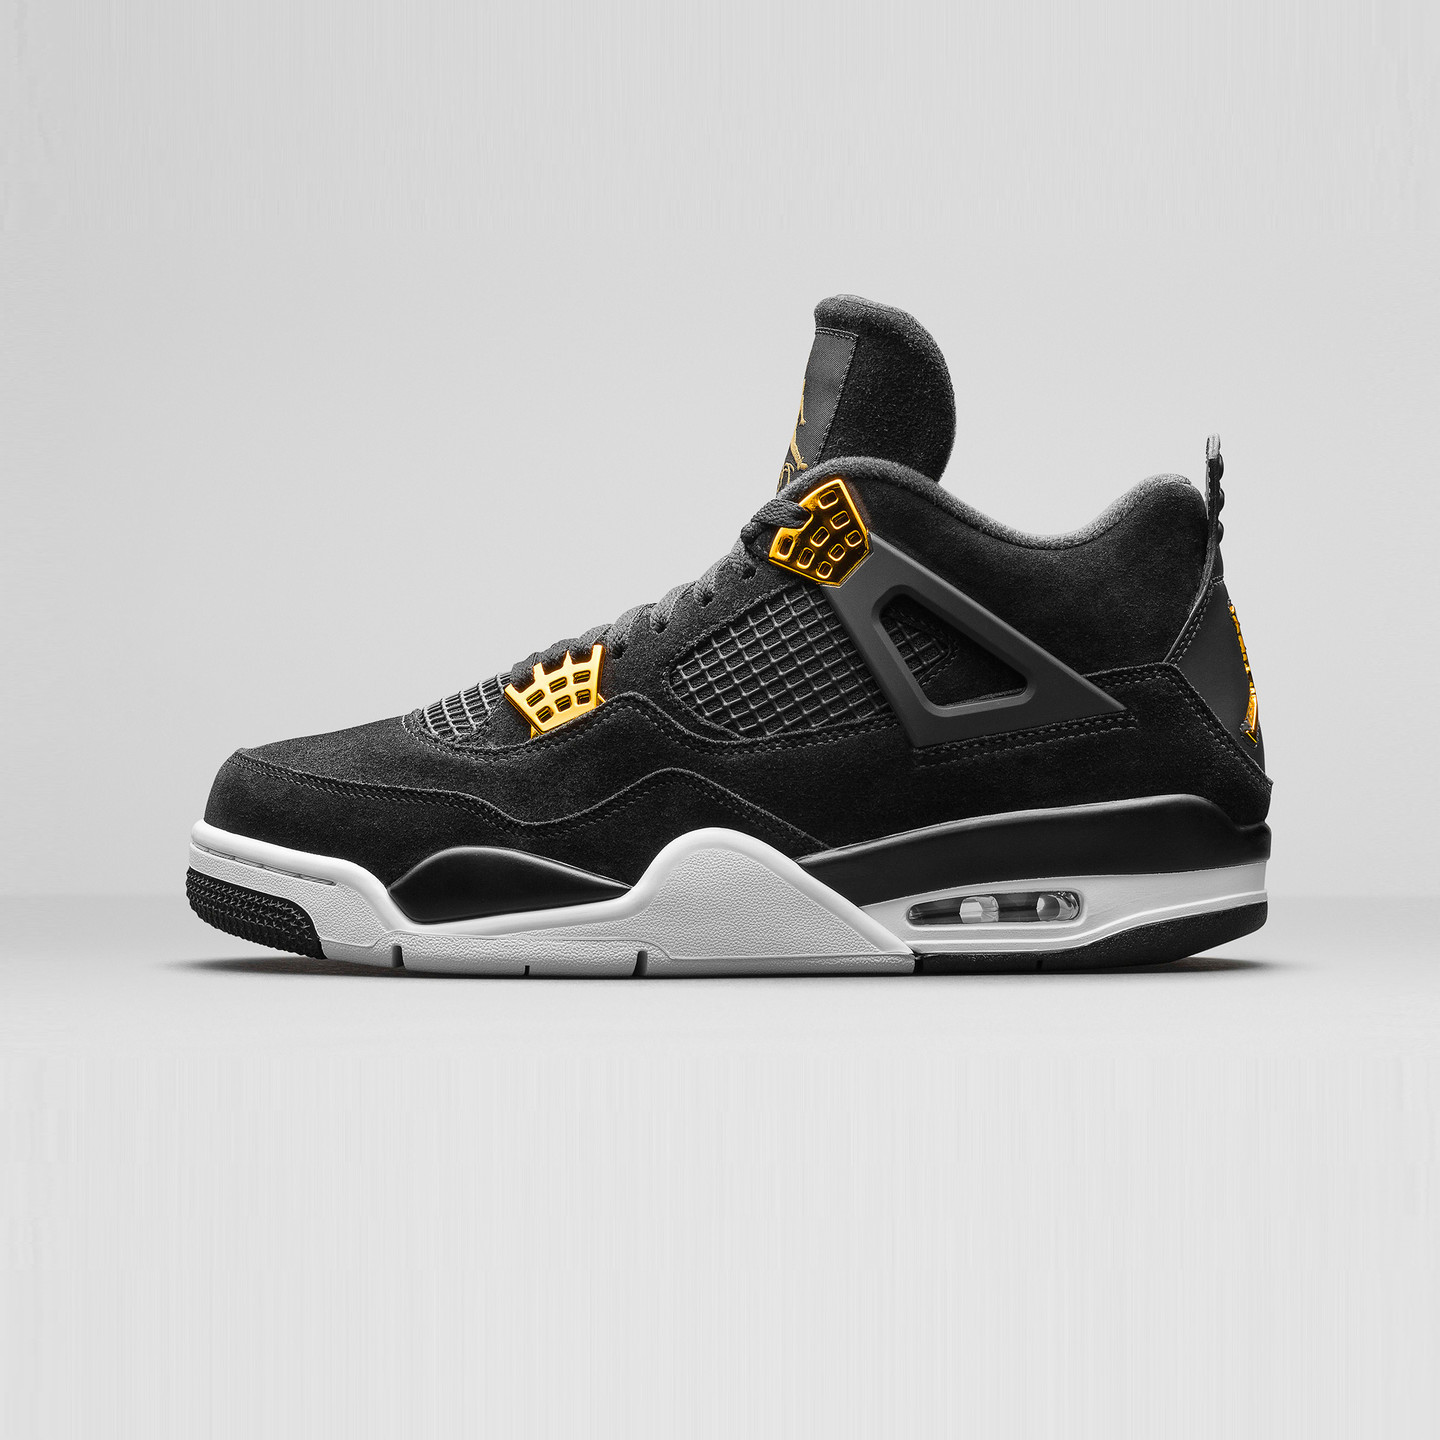 Jordan Air Jordan 4 Retro GS 'Royalty' Black / Metallic Gold / White 408452-032-37.5